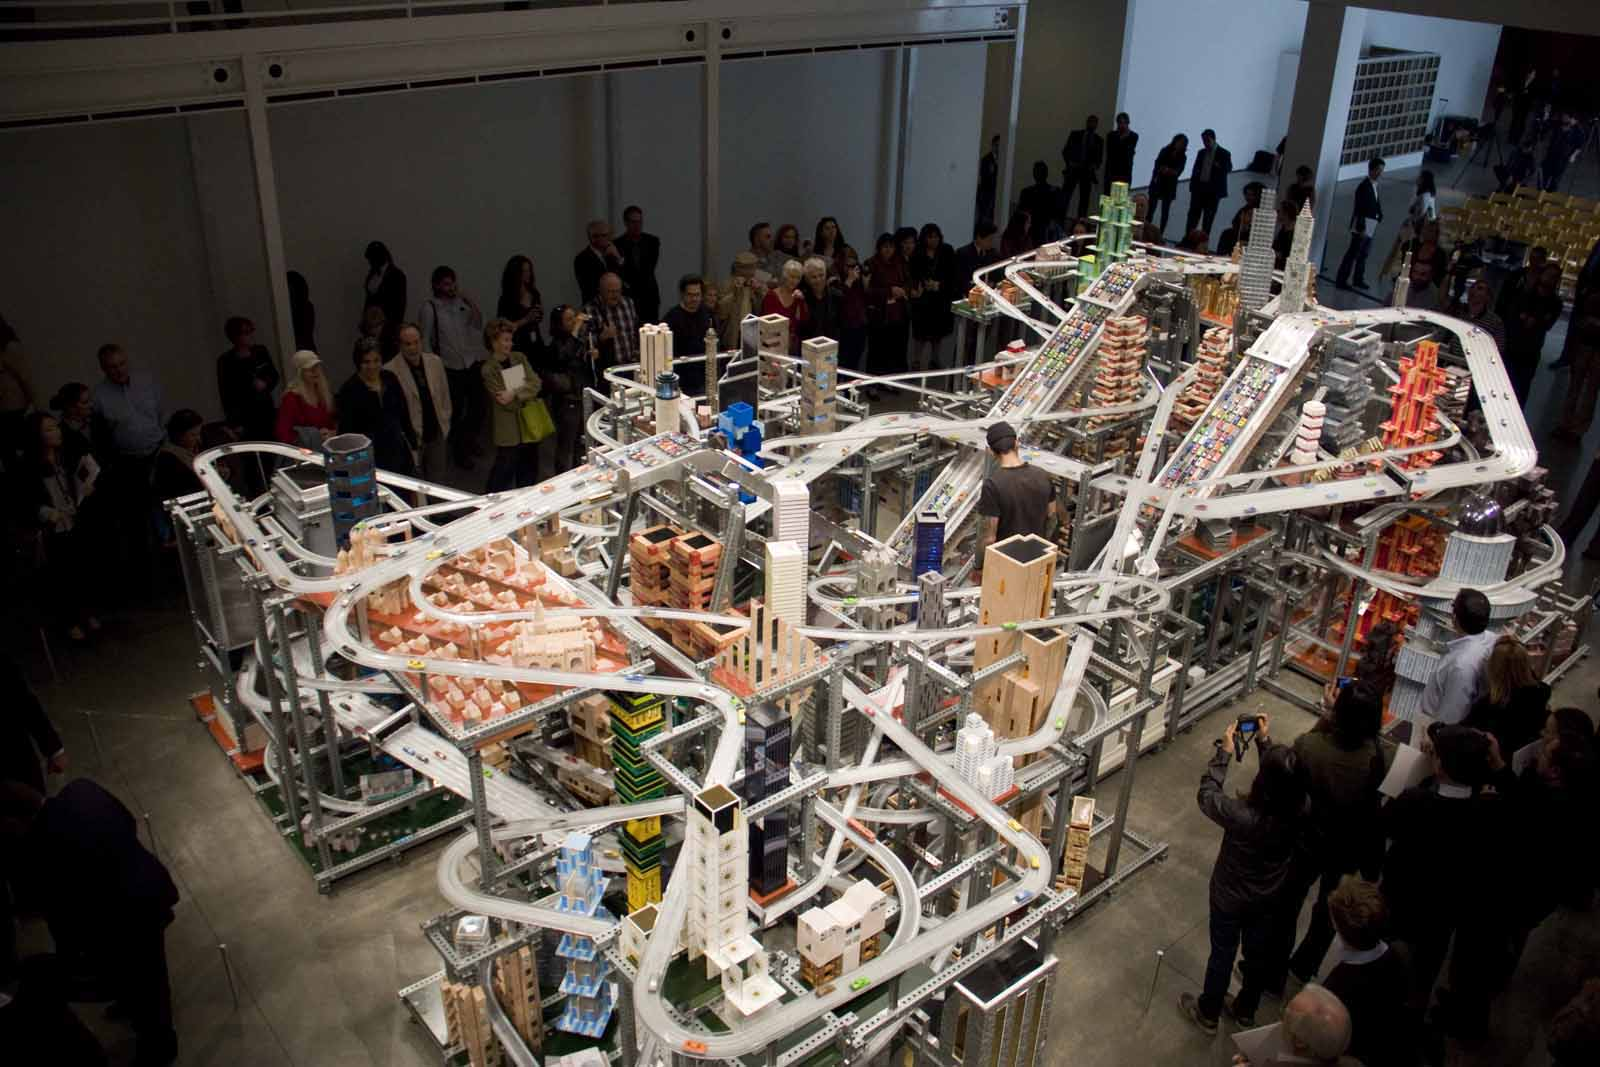 Metropolis II is a large-scale kinetic sculpture inspired by a Los Angeles of the future, with traffic moving at frenetic speeds.